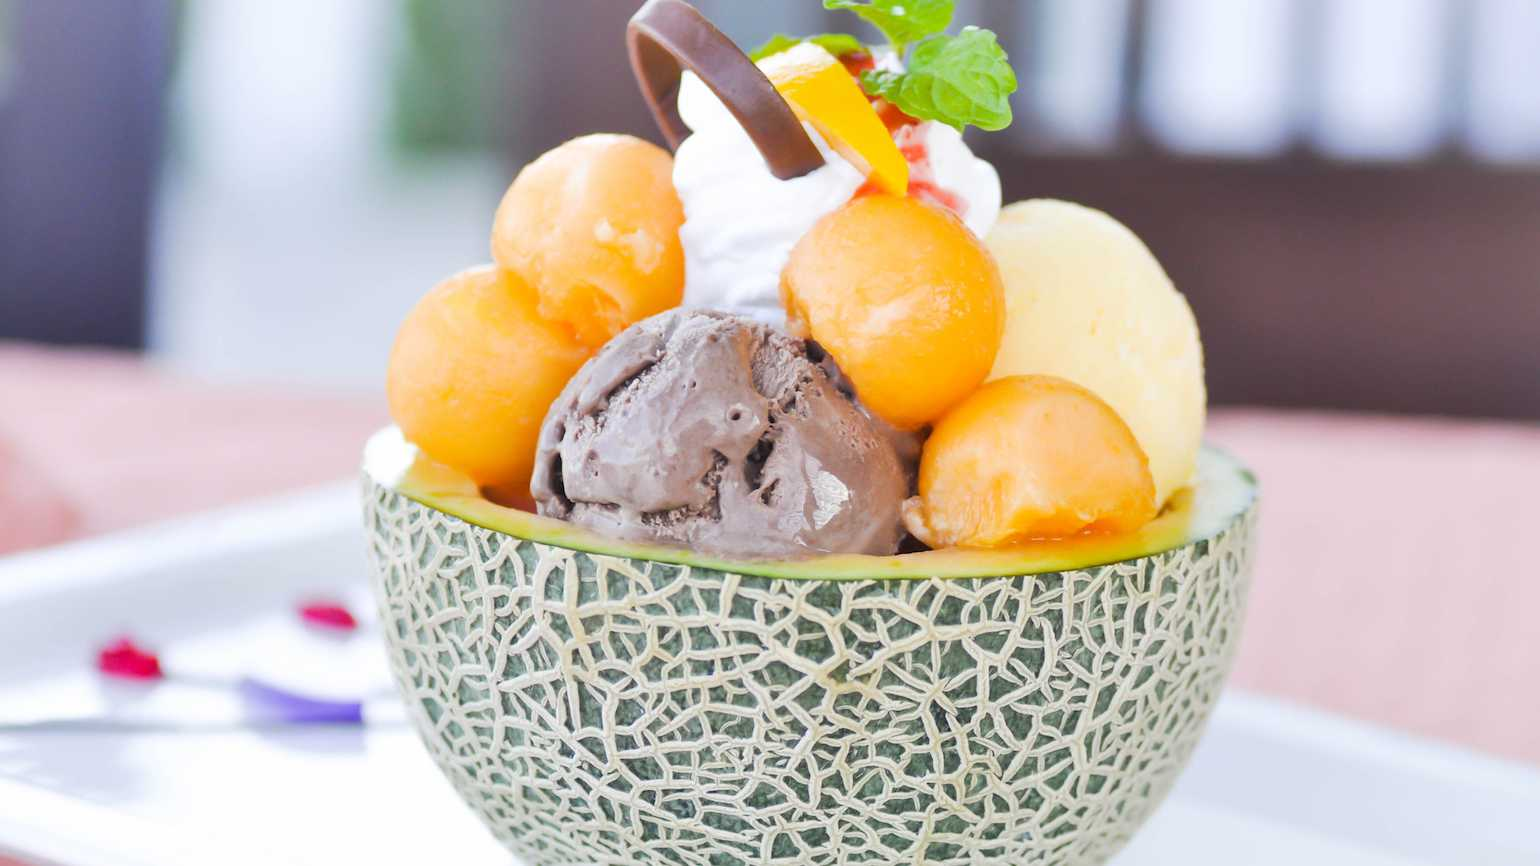 Ice cream in a cantaloupe